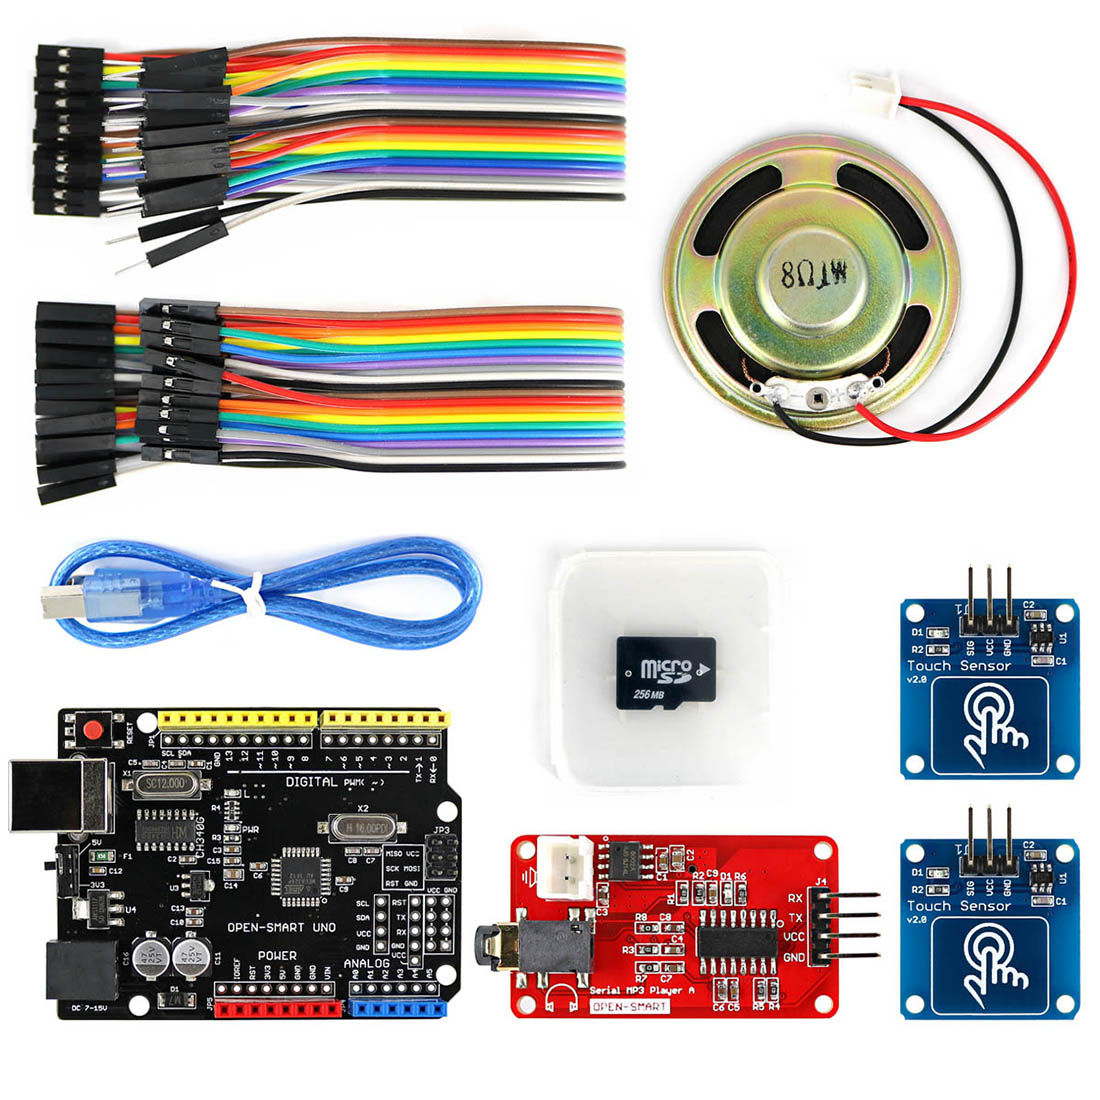 MP3 Player Kit For UNO R3 Board Micro SD Card Touch Sensor Module For Arduino Programmable Toys